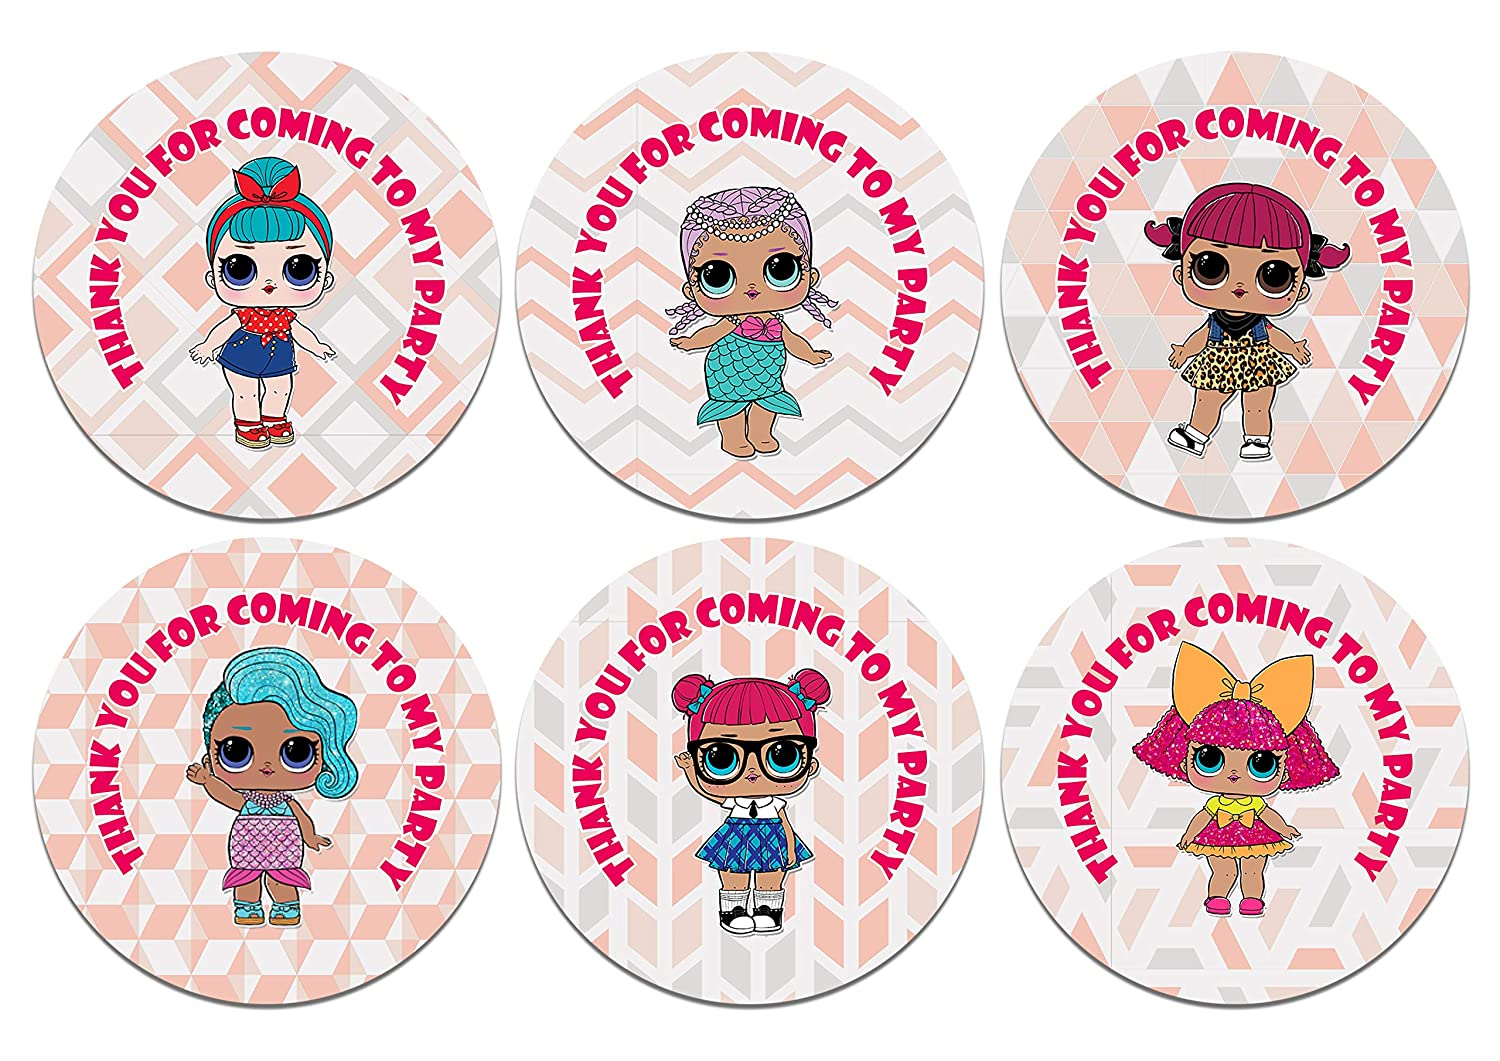 Get invited lol thank you for coming to my party stickers x 48 amazon co uk toys games